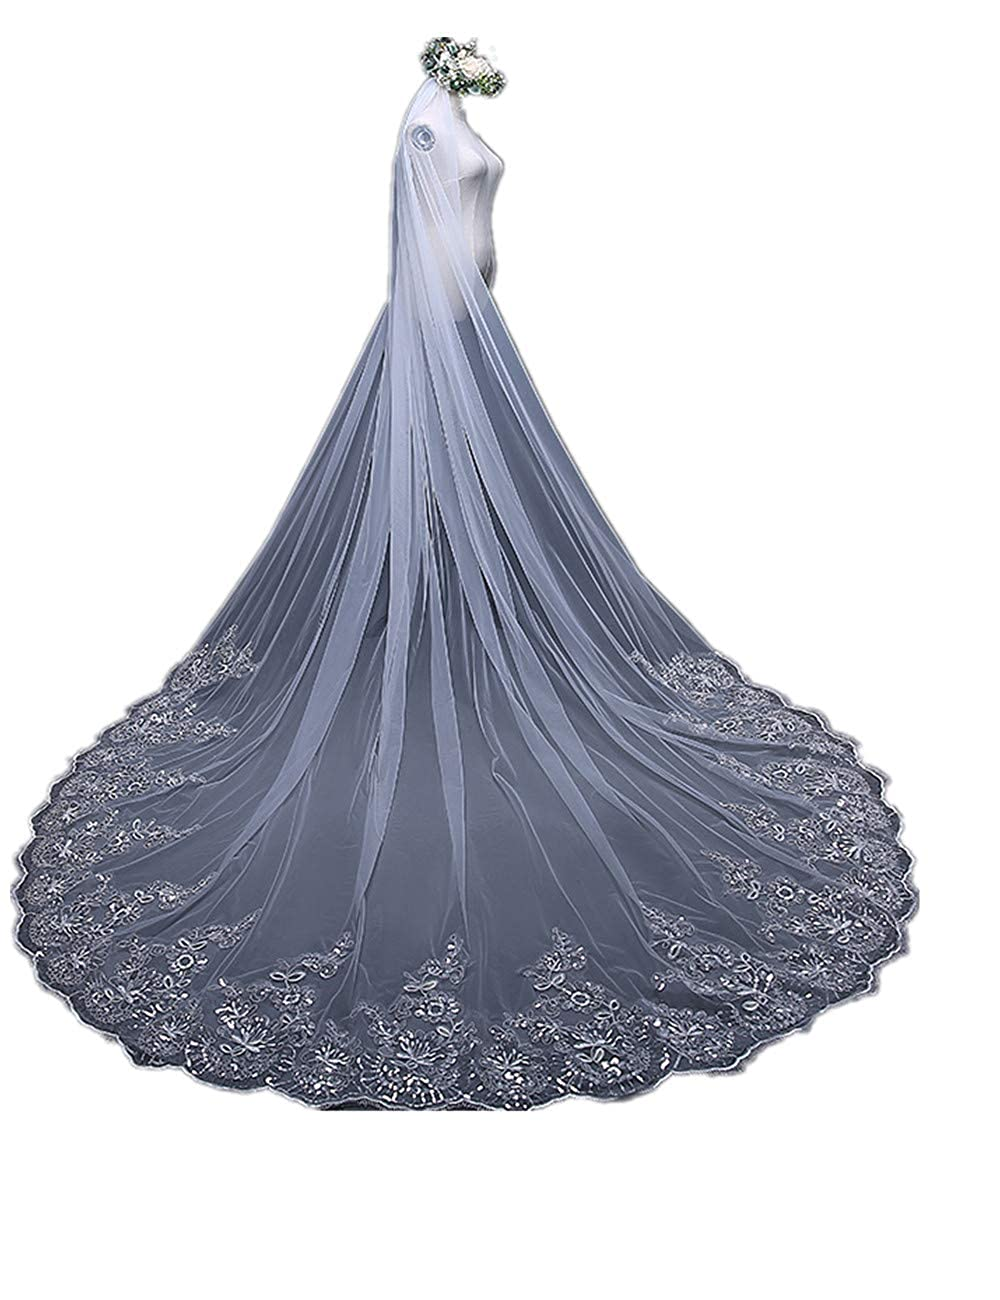 Stylish Tulle Cape Veil Cathedral Length Lace From Shoulder to Floor For Bridal 2018